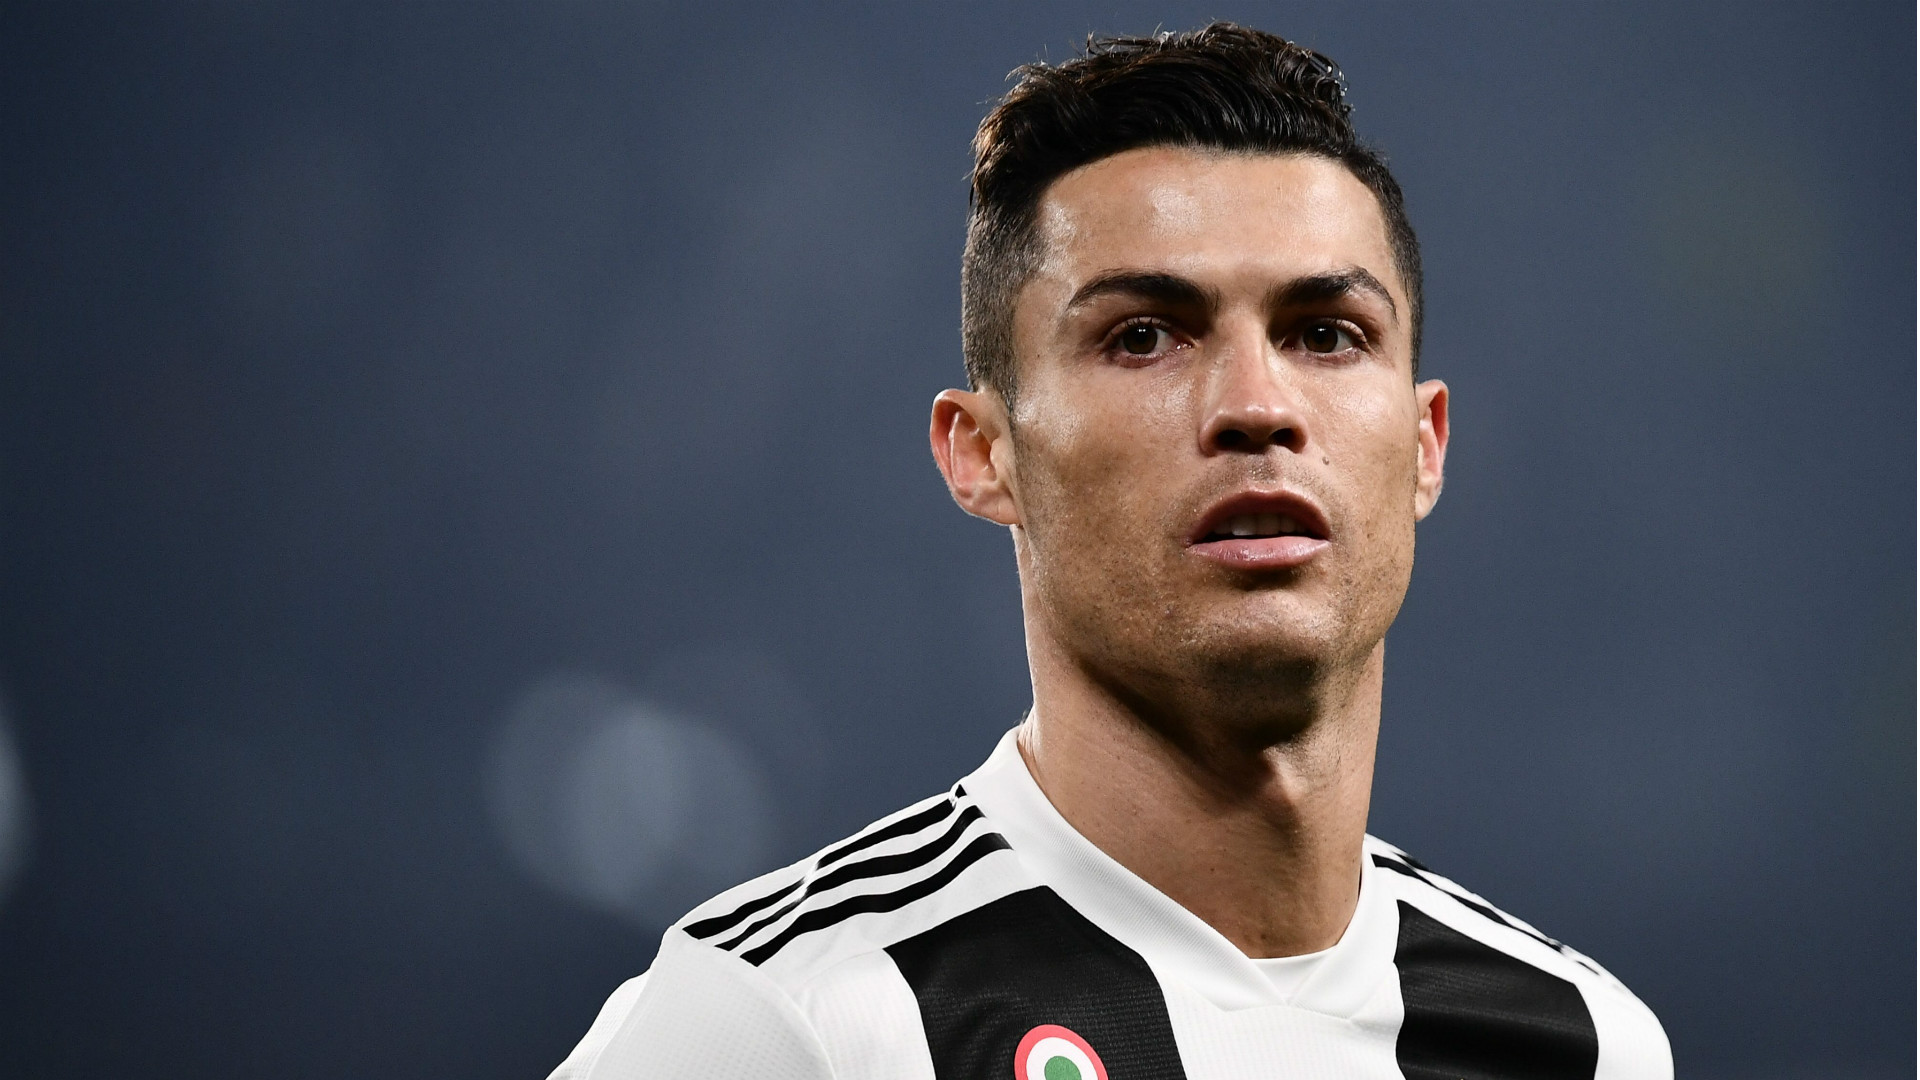 Cristiano Ronaldo Injury Risk To Be Taken By Juventus